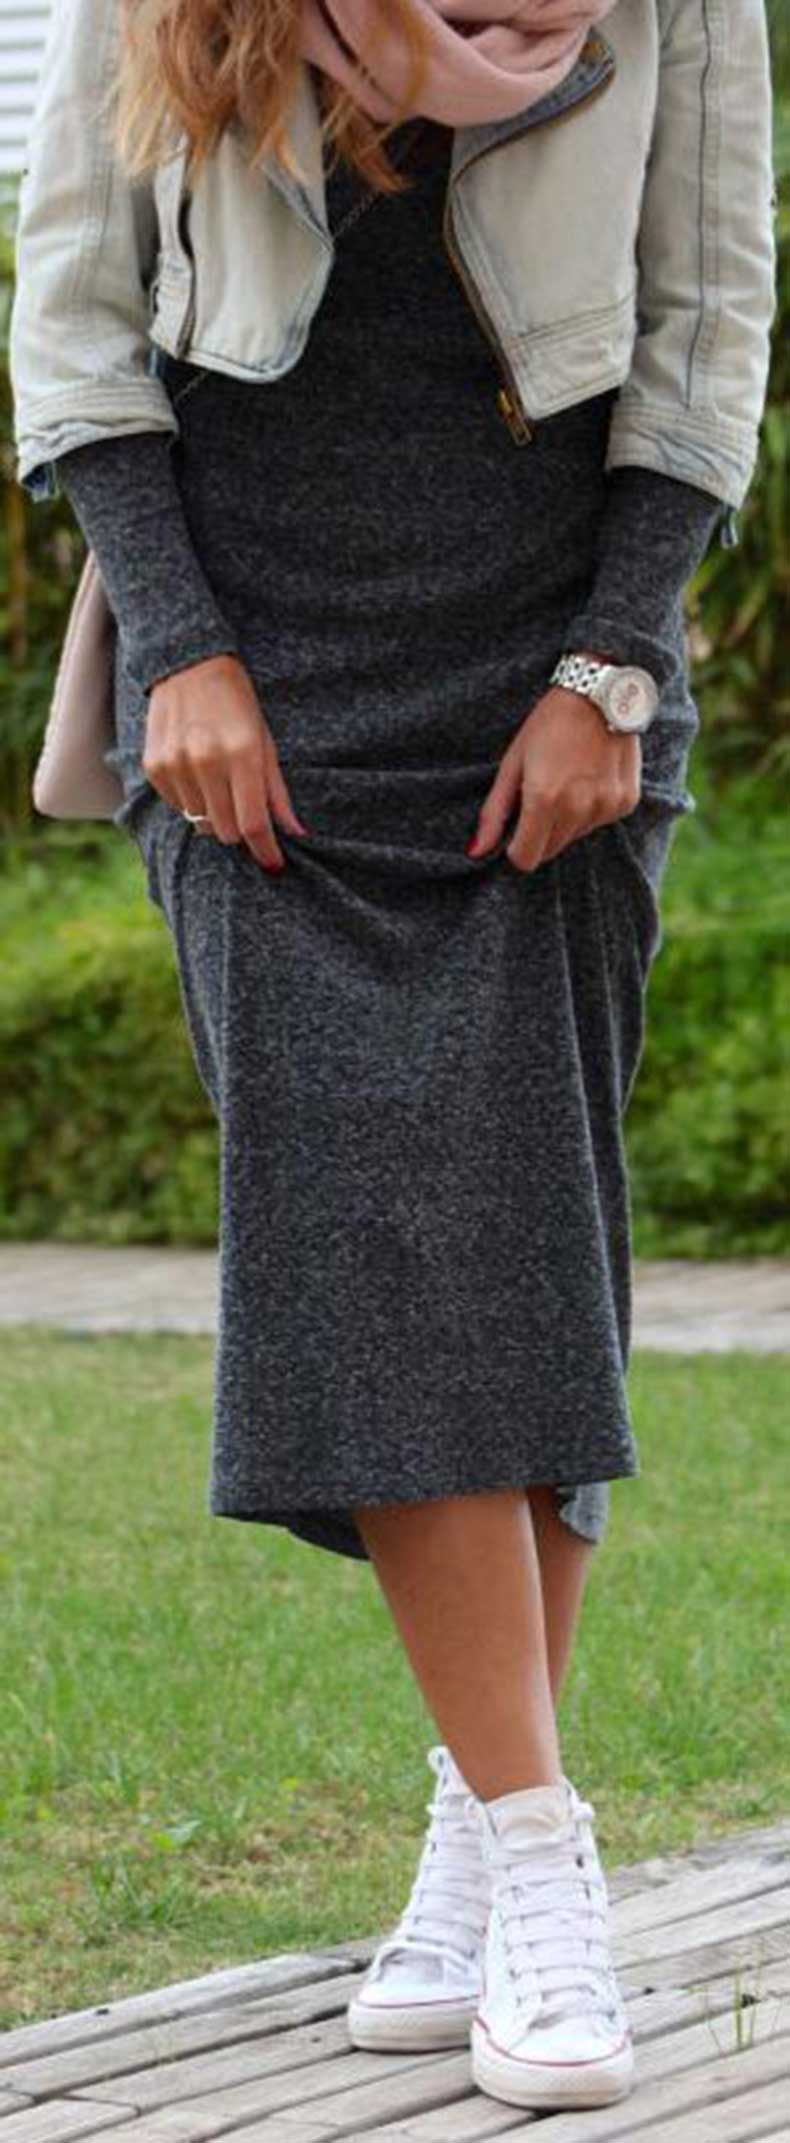 Maxi-Dress-Converse-Sneakers-Outfit